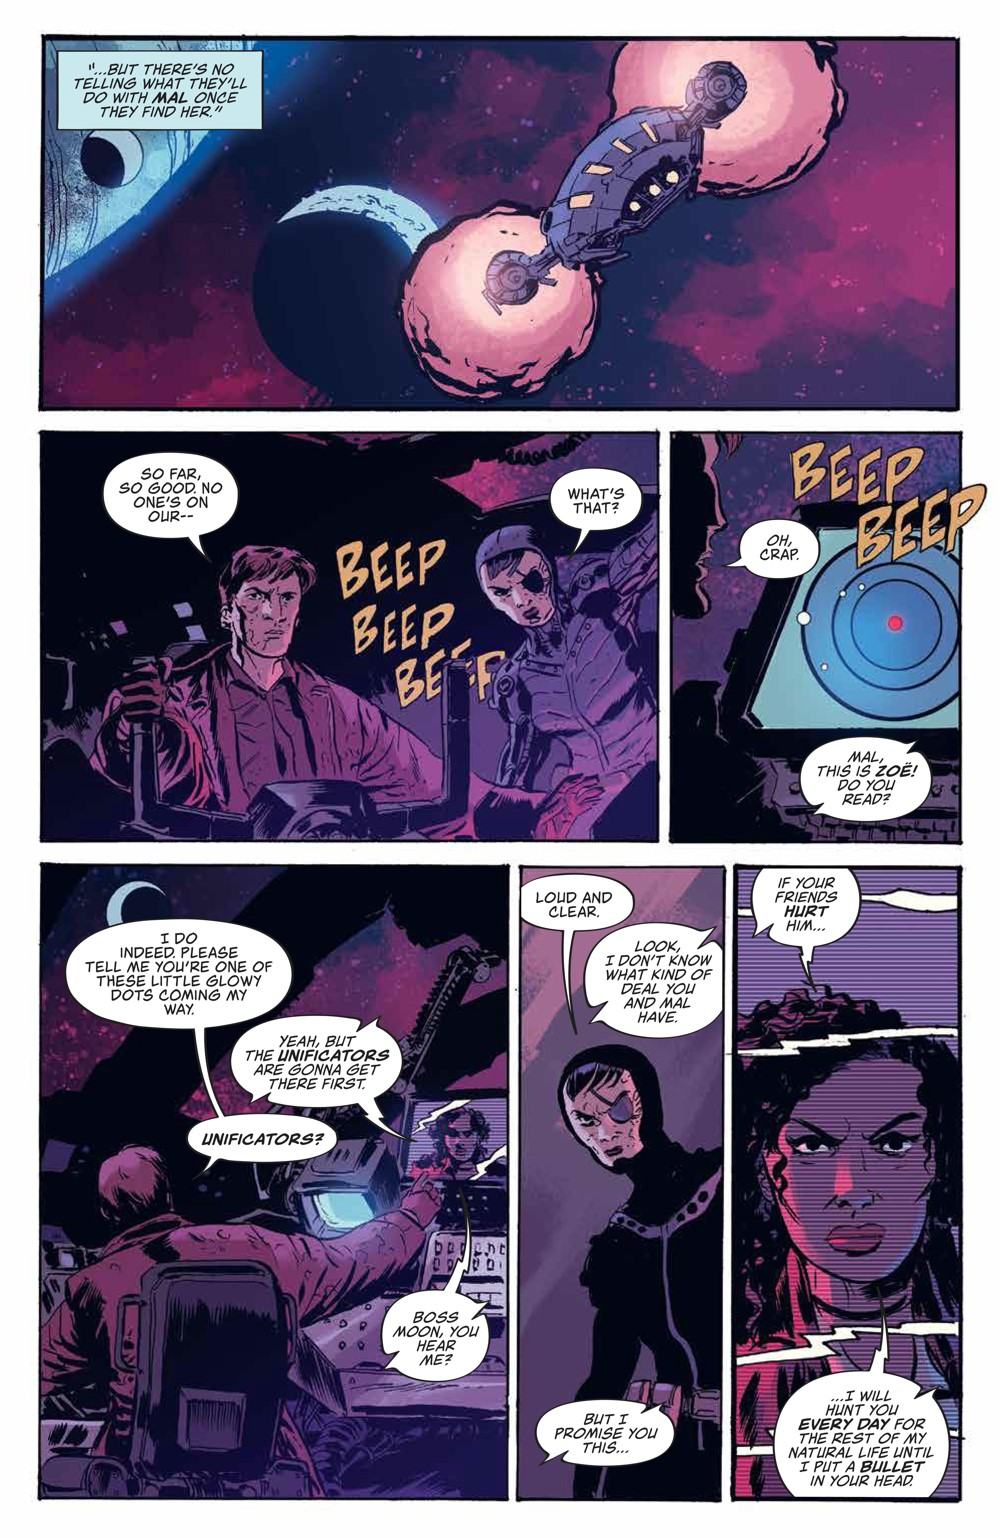 Firefly_v3_SC_PRESS_19 ComicList Previews: FIREFLY THE UNIFICATION WAR VOLUME 3 TP